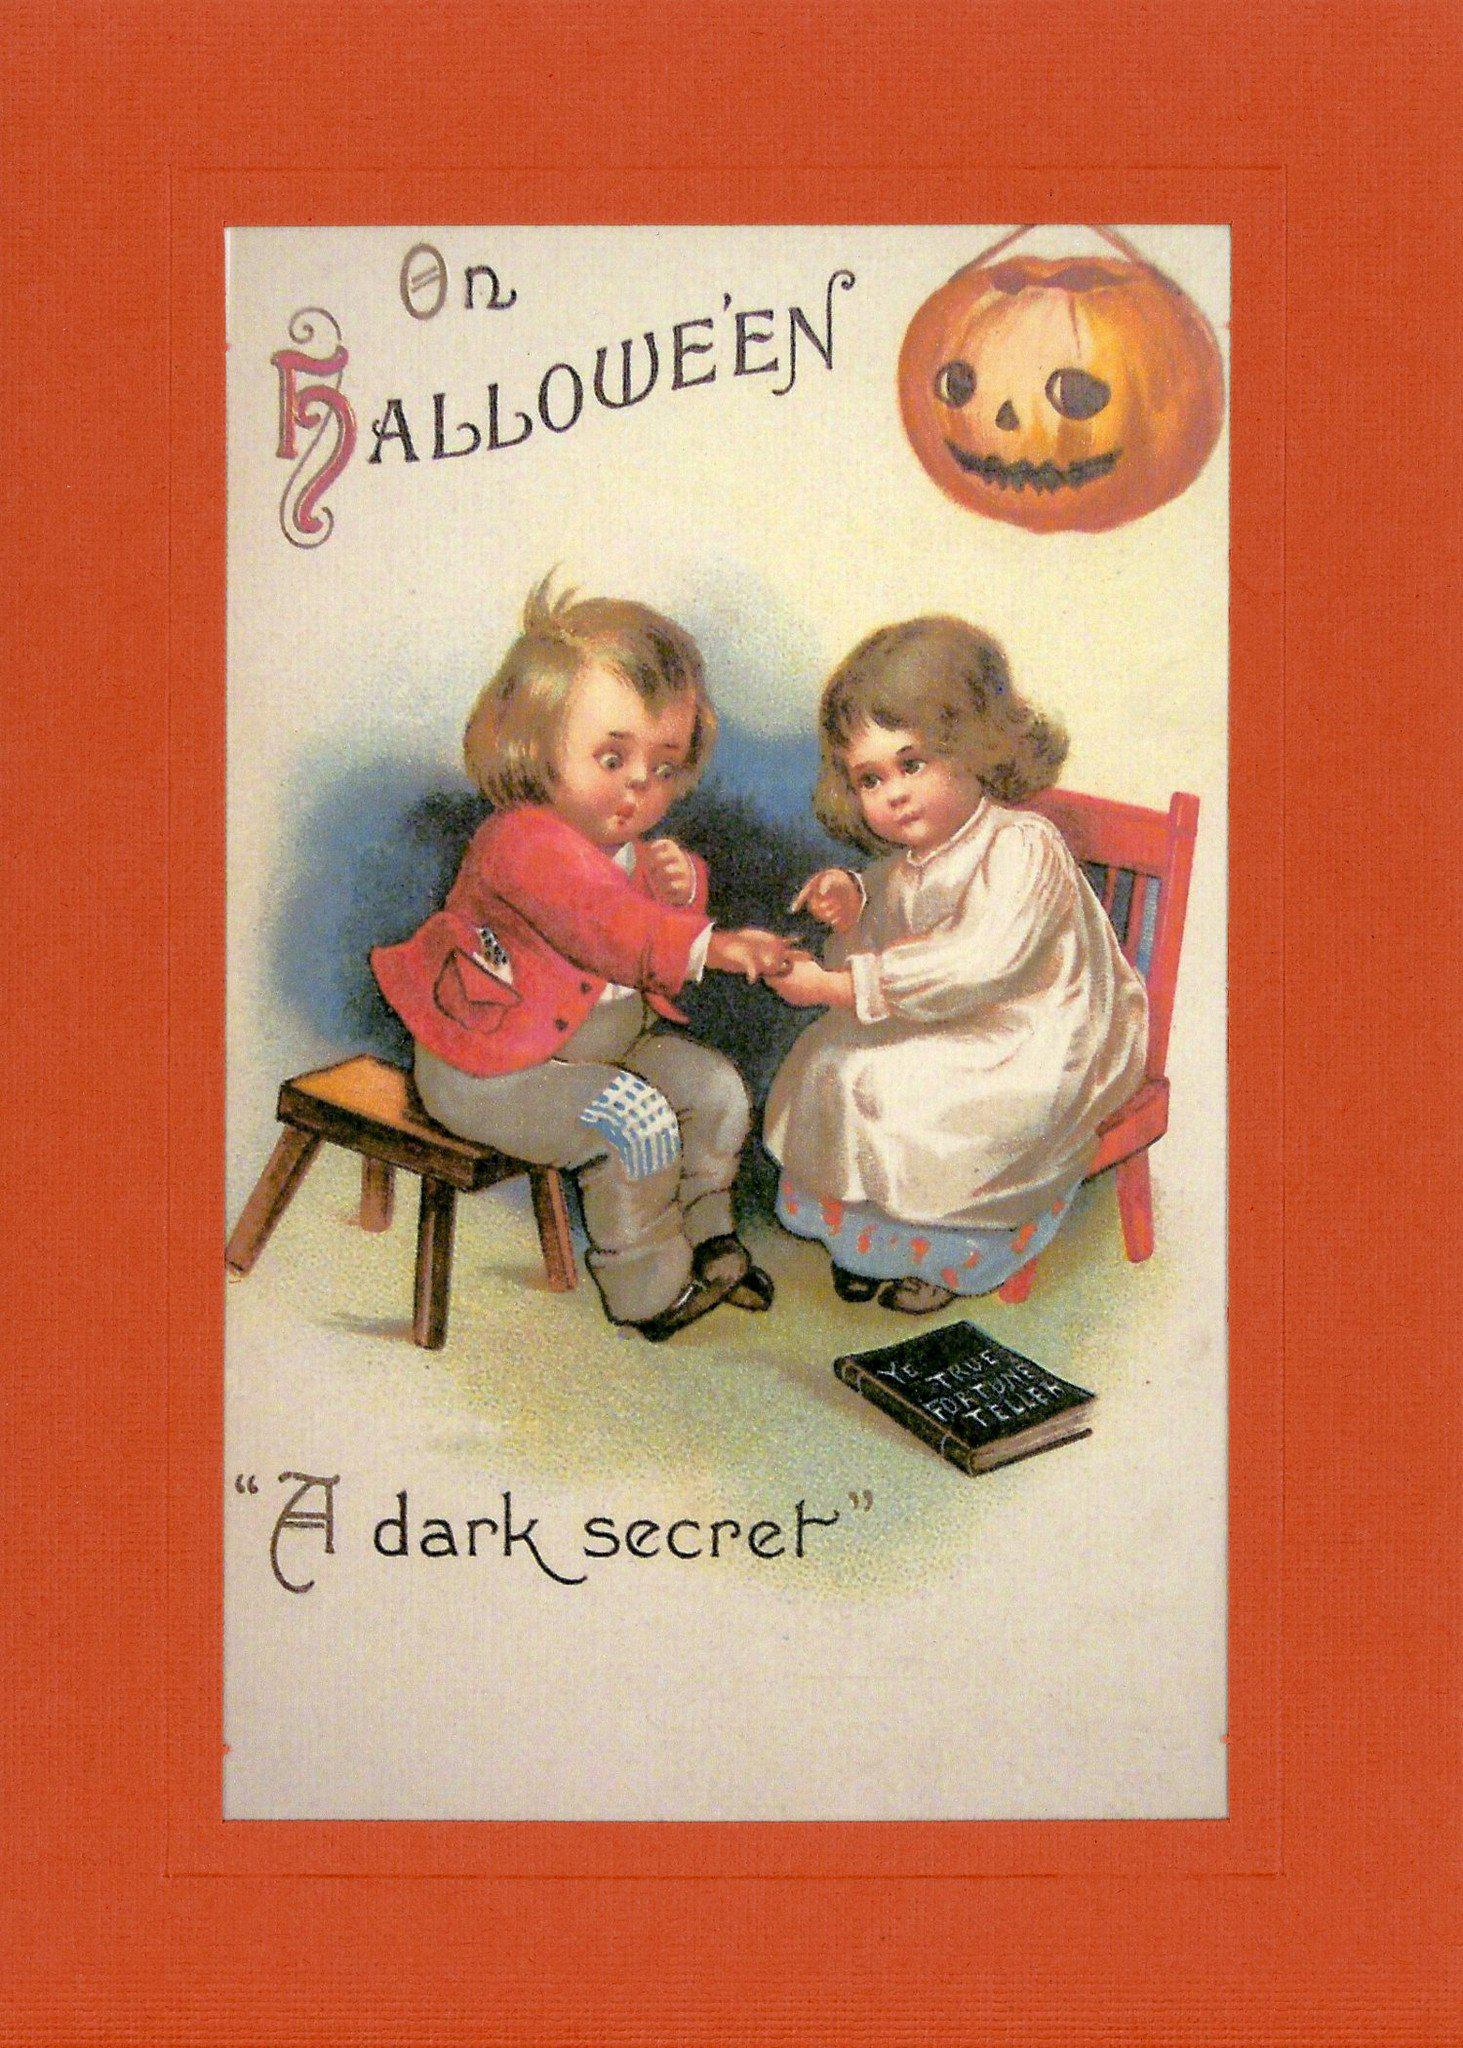 On Hallowe'en-Greetings from the Past-Plymouth Cards